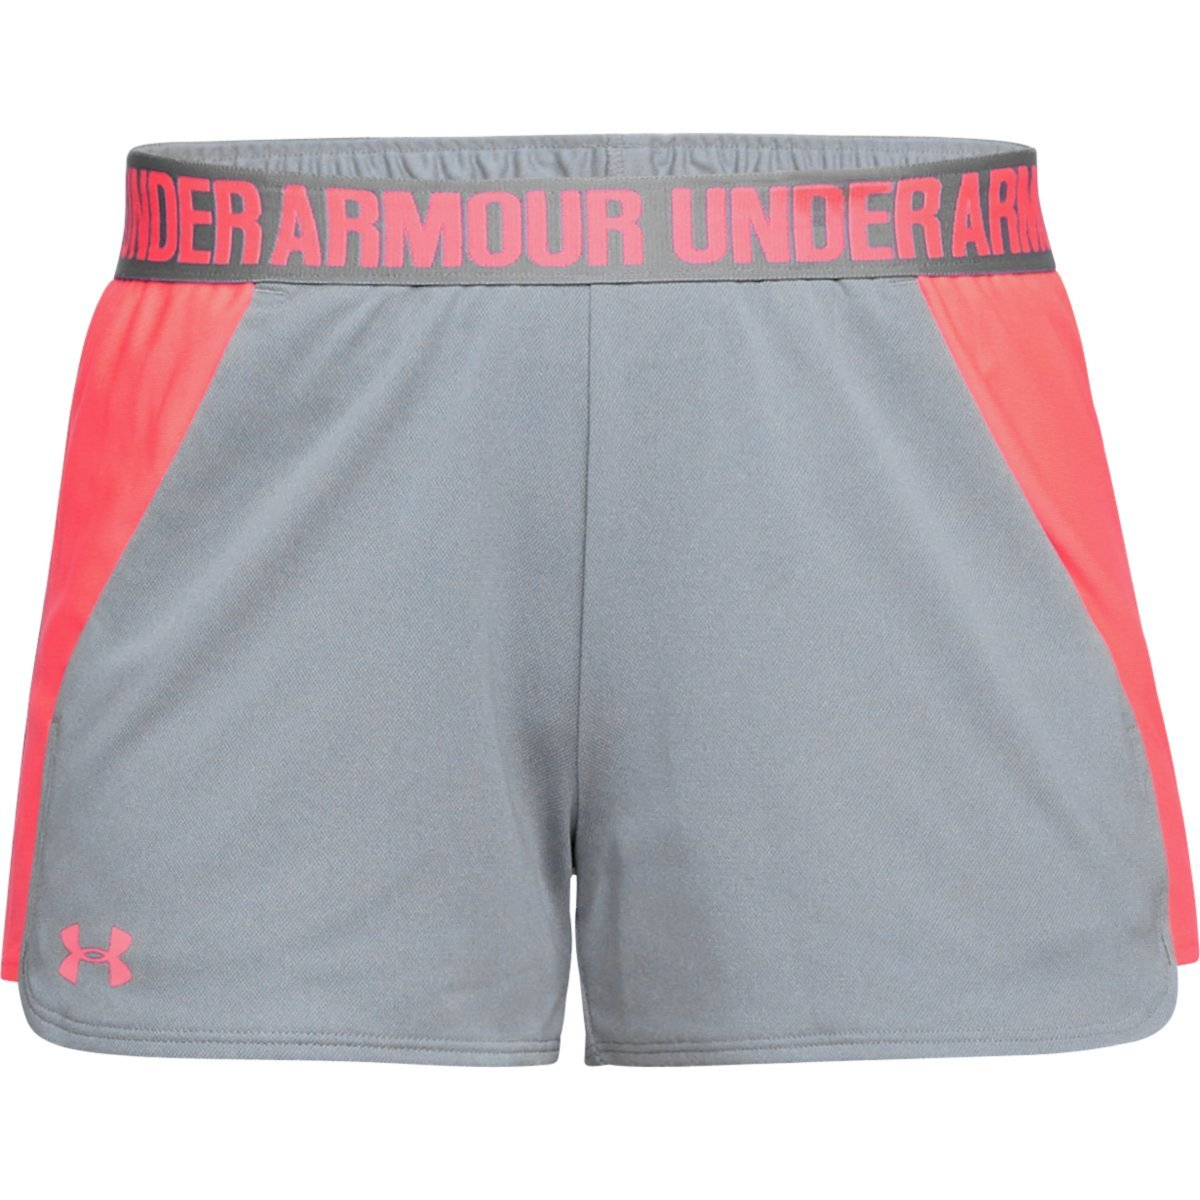 Under Armour Women's Play Up Shorts - Black, S